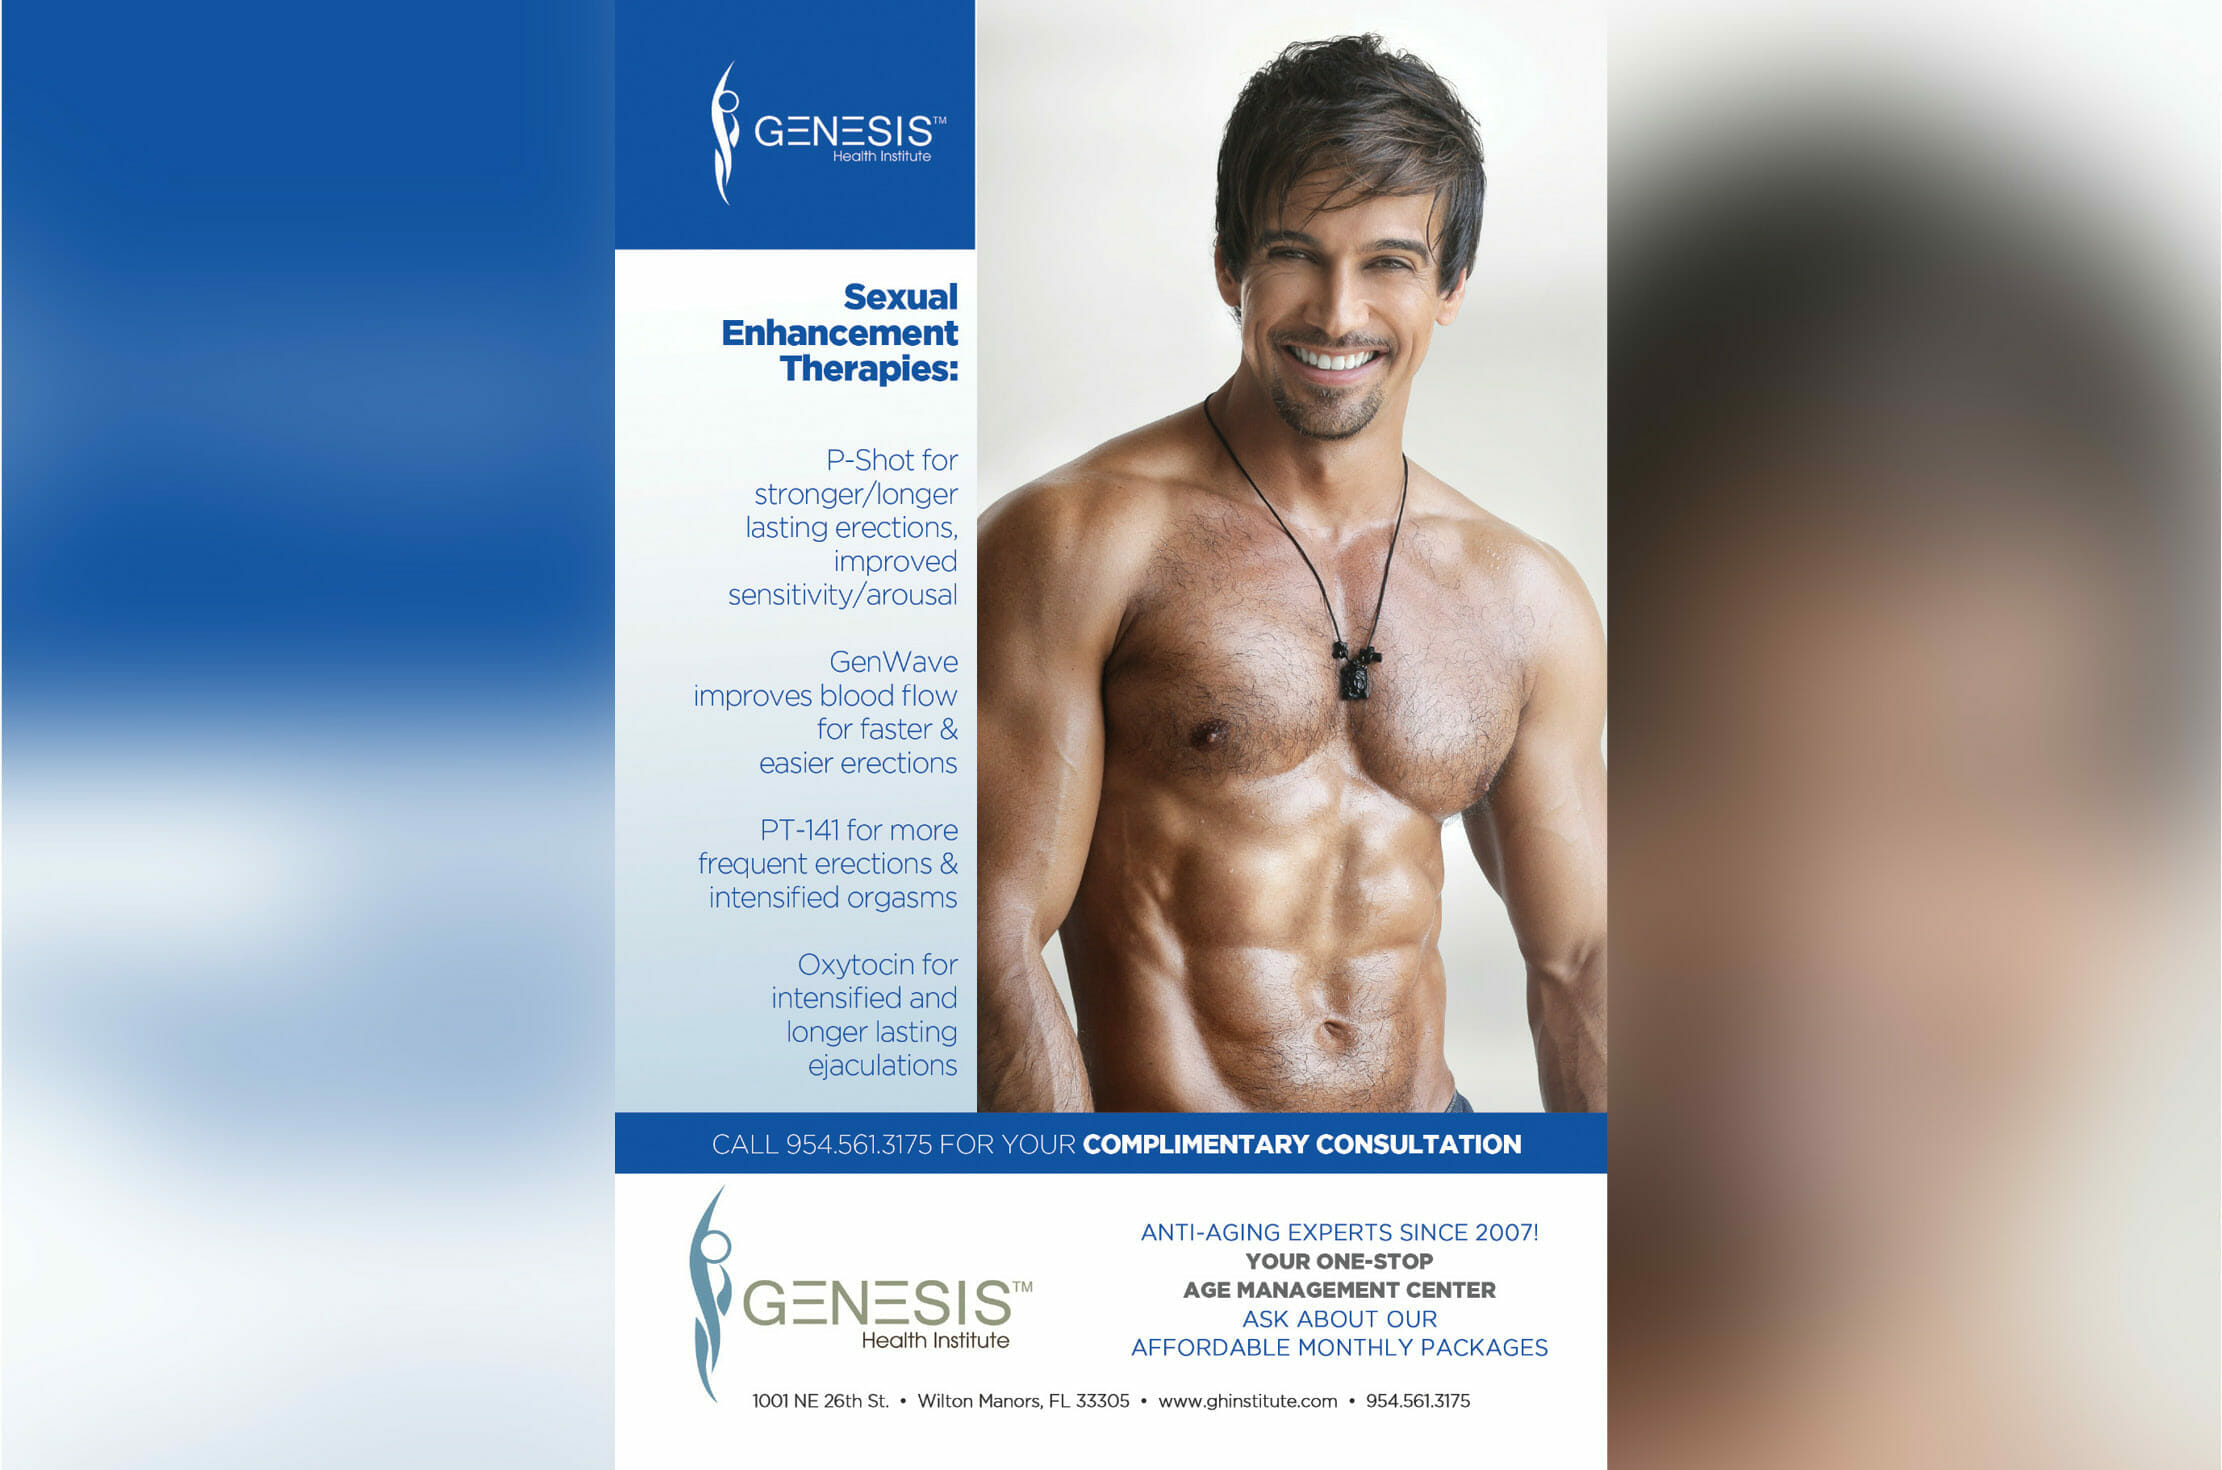 Sexual Enhancement and Advancement Therapies